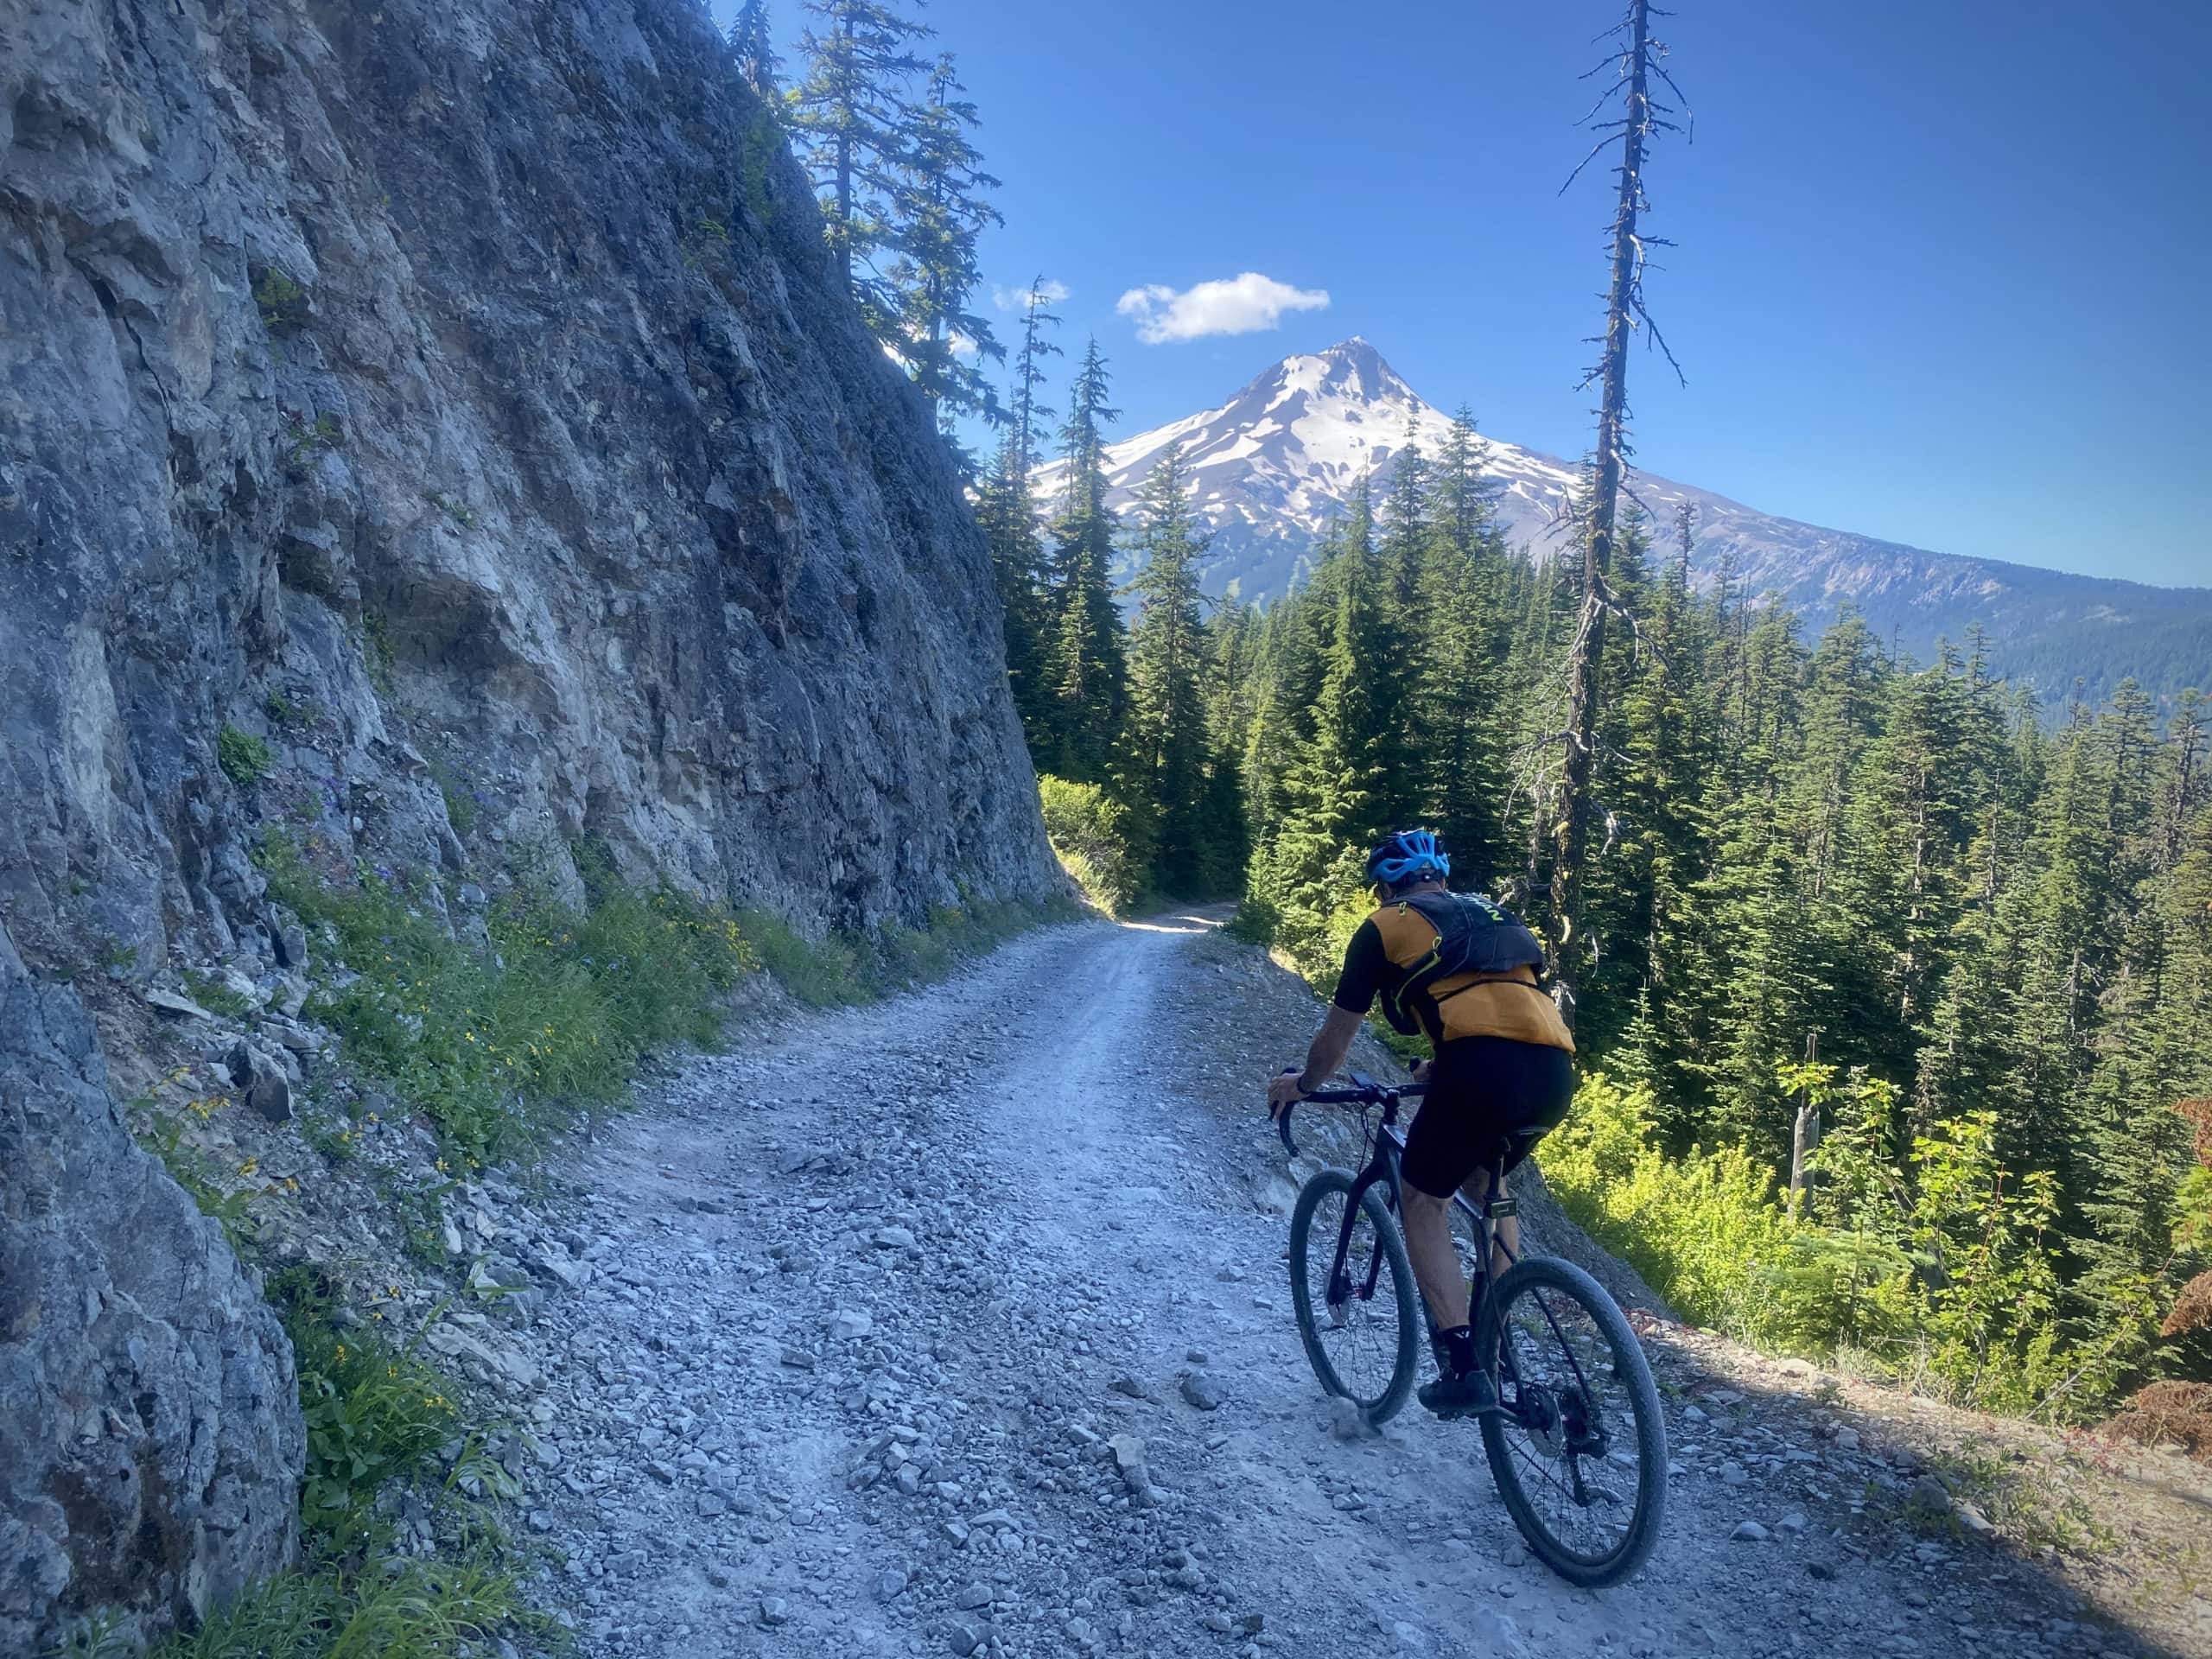 Gravel cyclist on the Terrible Traverse portion of Bennett road in the Mt Hood National Forest.